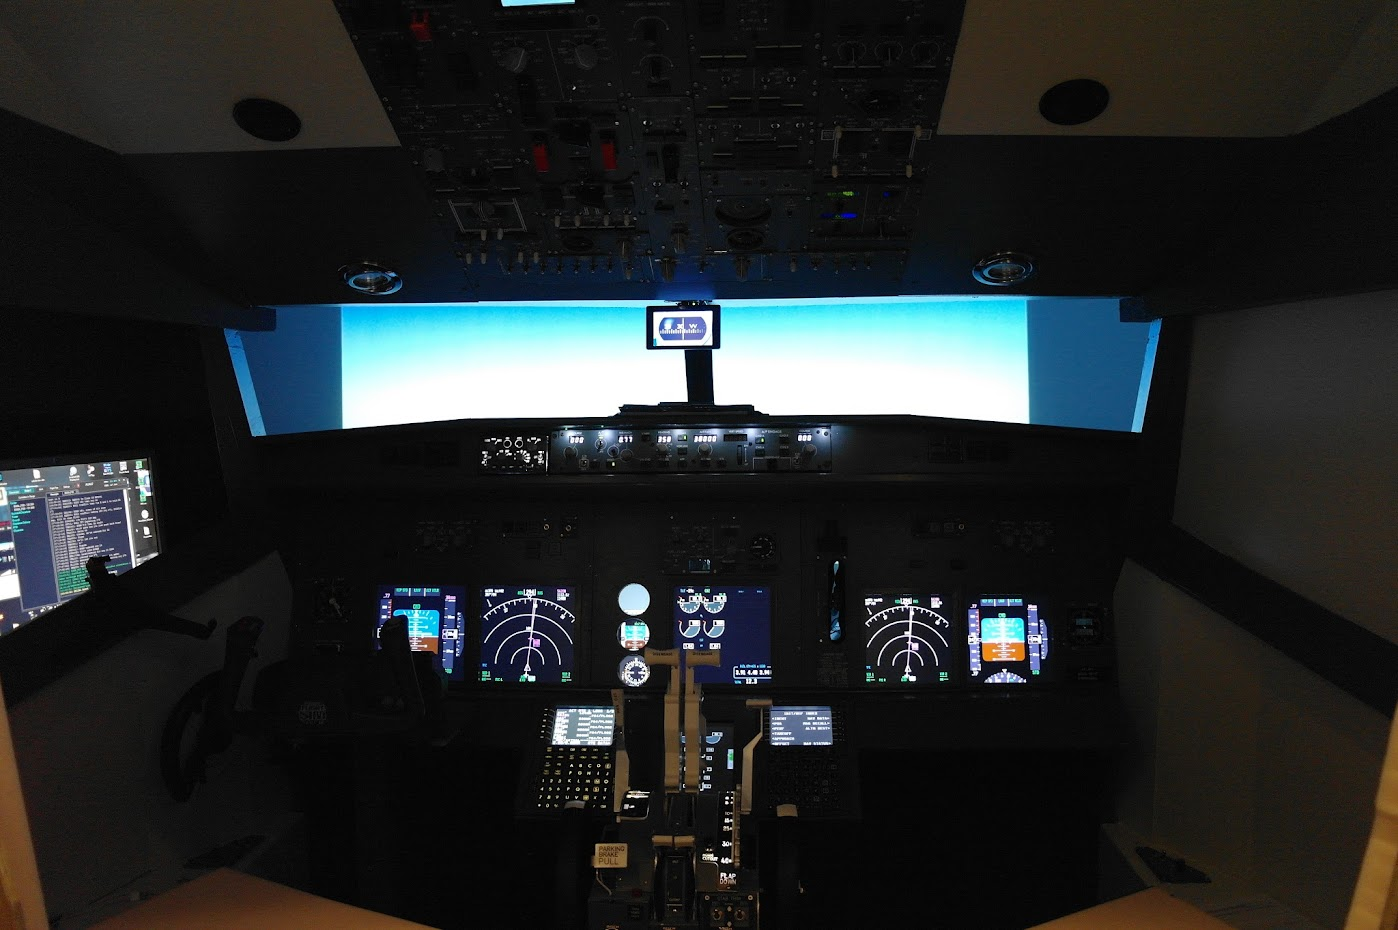 curved screen with one projector prosim ar forum a320 aircraft flight manual airbus a320 aircraft flight manual